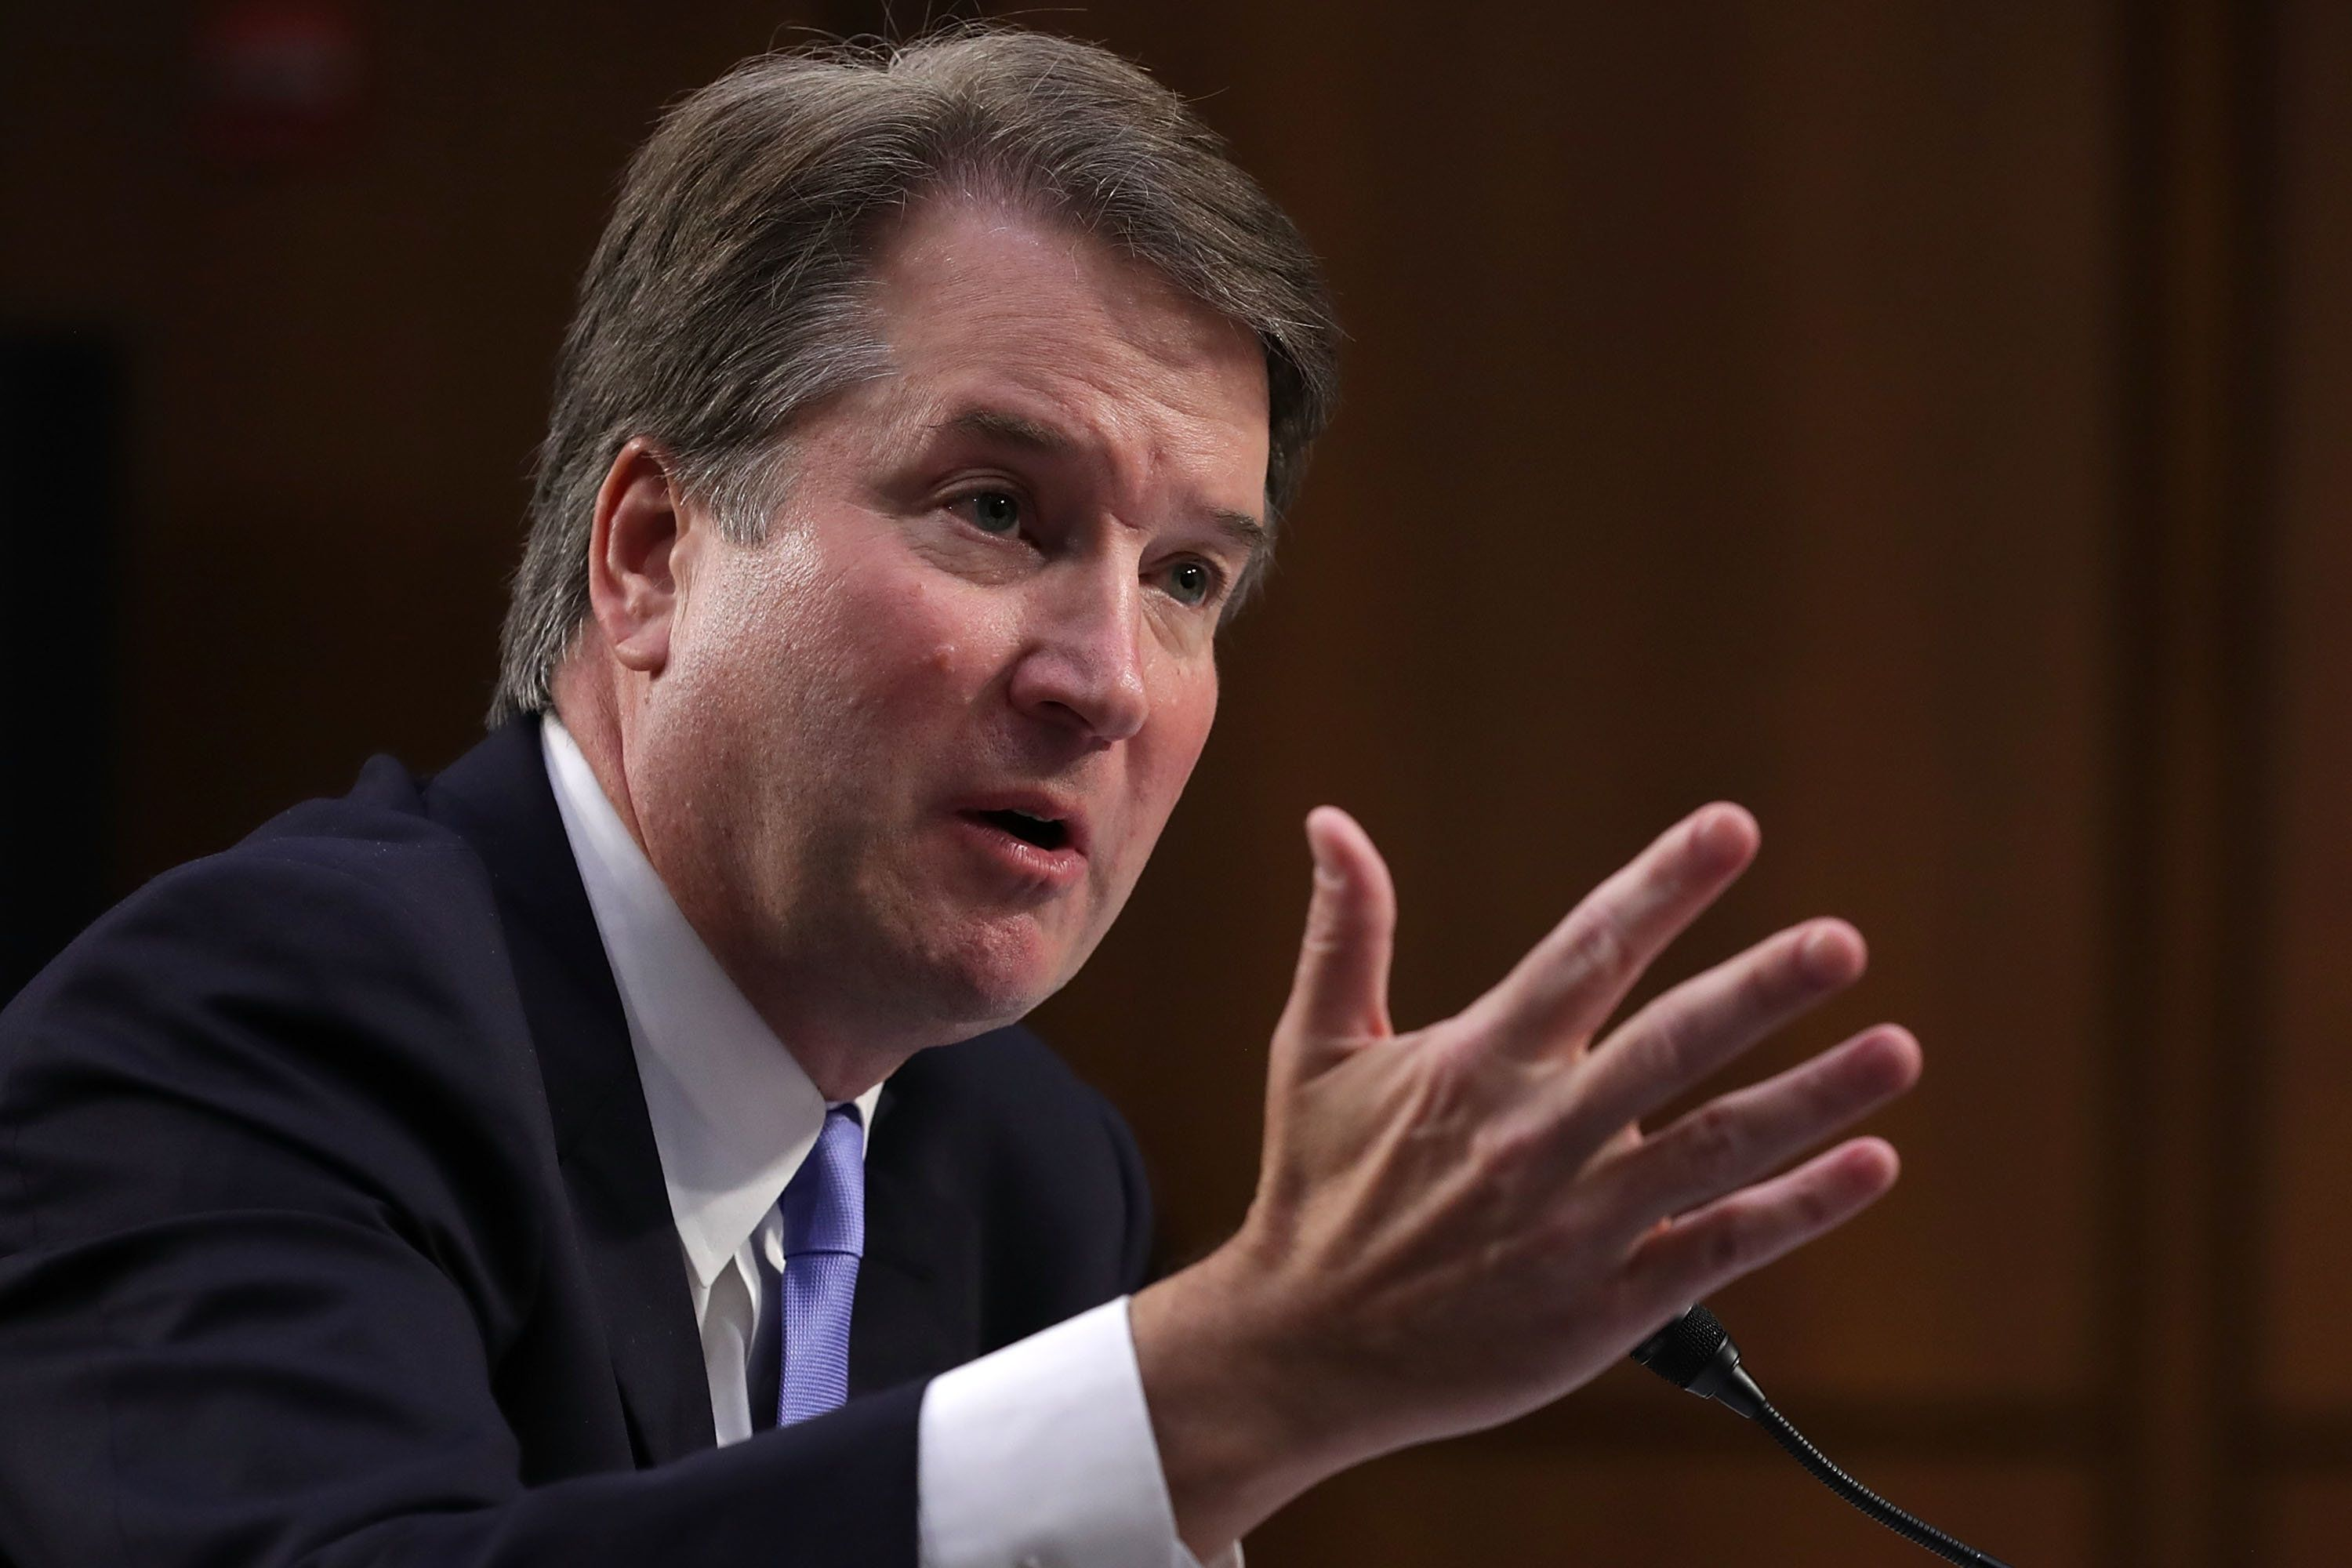 Senate Judiciary Committee schedules vote on Kavanaugh nomination